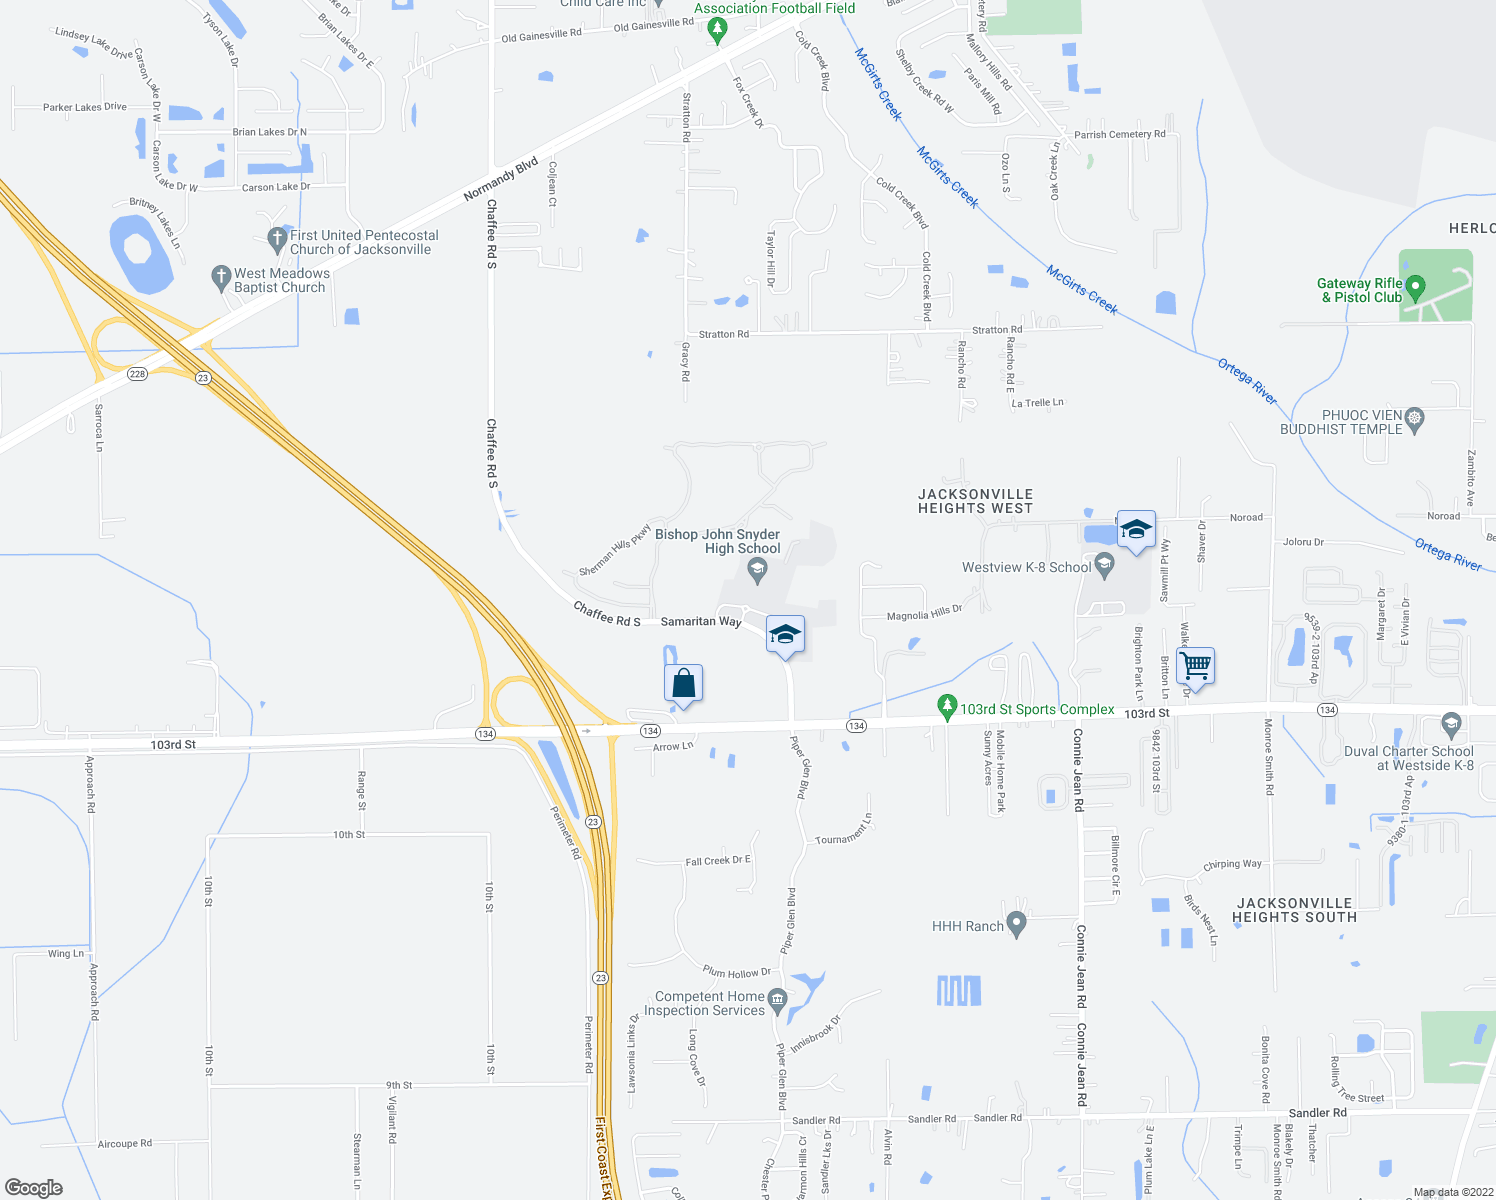 map of restaurants, bars, coffee shops, grocery stores, and more near Samaritan Way in Jacksonville